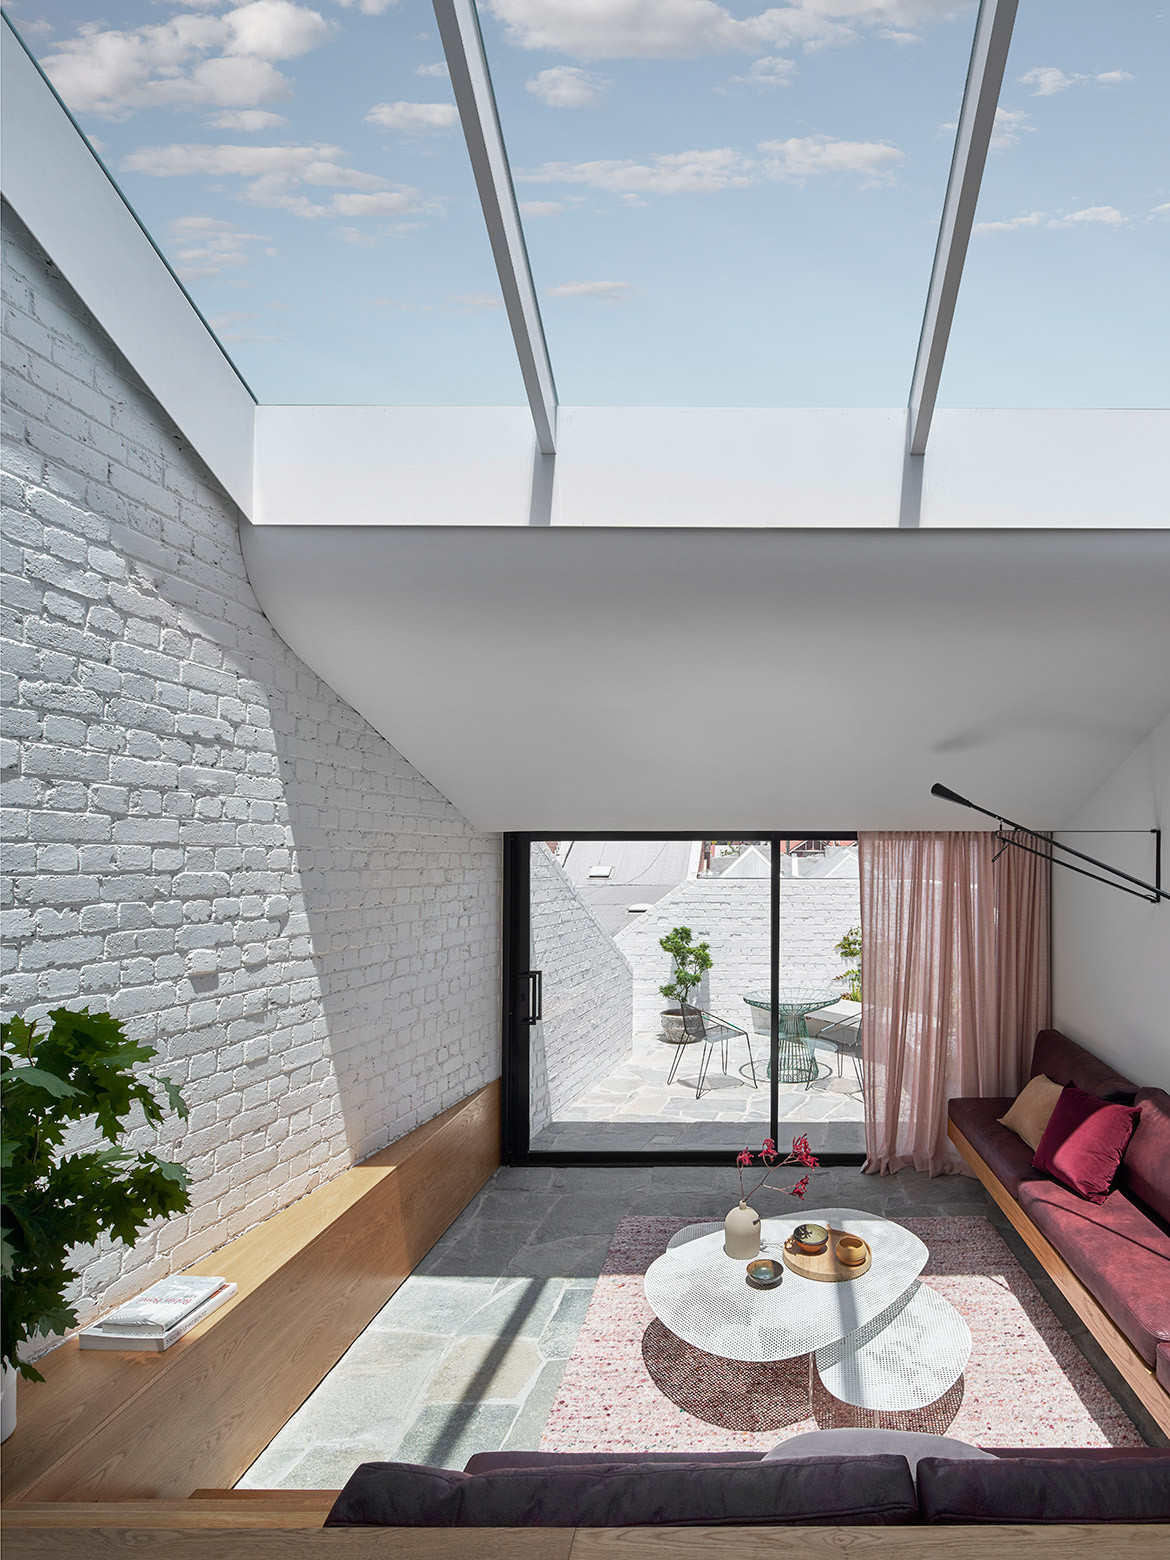 In order to make the most of this Melbourne residence's blessed northerly aspect, Taylor Knights literally flipped the traditional layout of Fitzroy Terrace on its head.